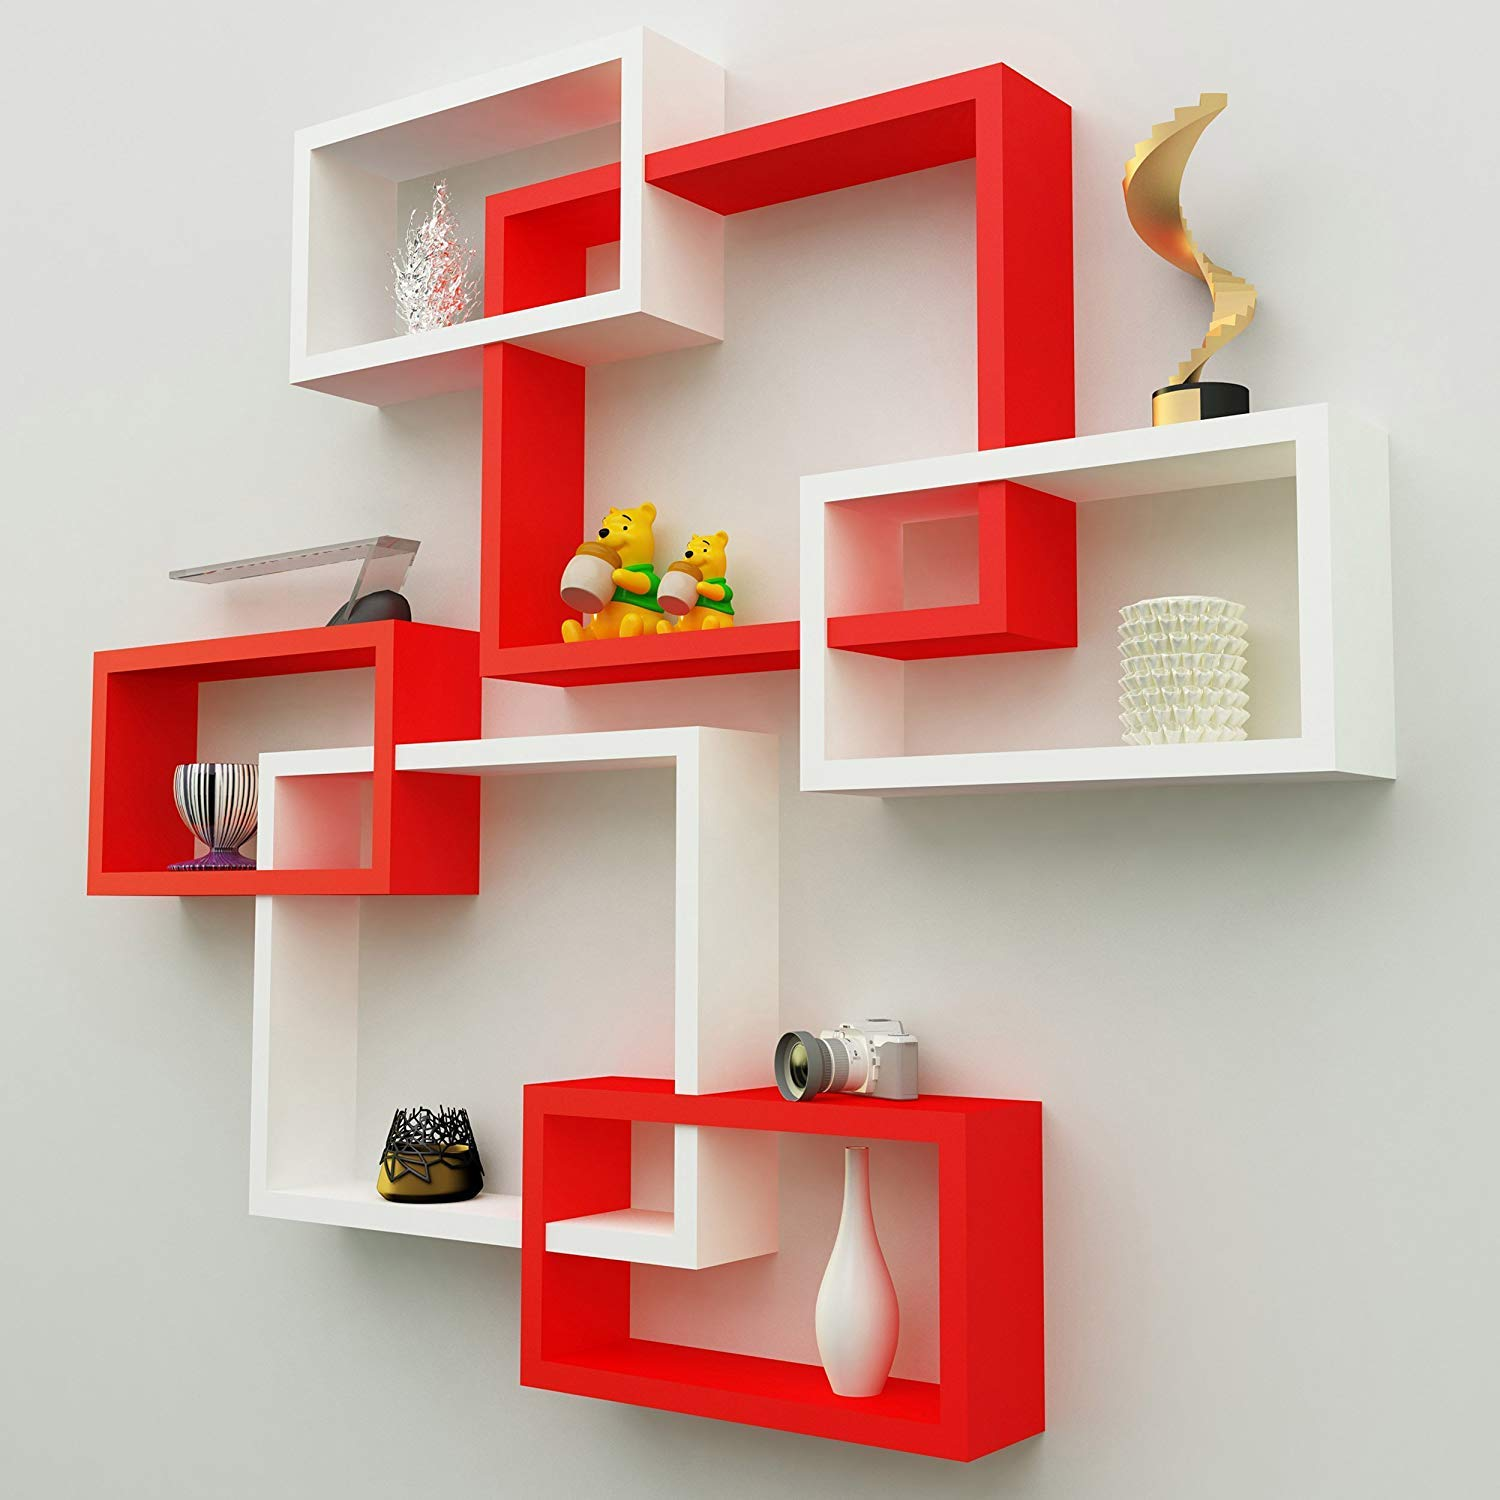 encore decor wall shelf rack floating shelves book for books intersecting display storage mount with red and white rustic fire surround hanging shoe cabinet distressed wood